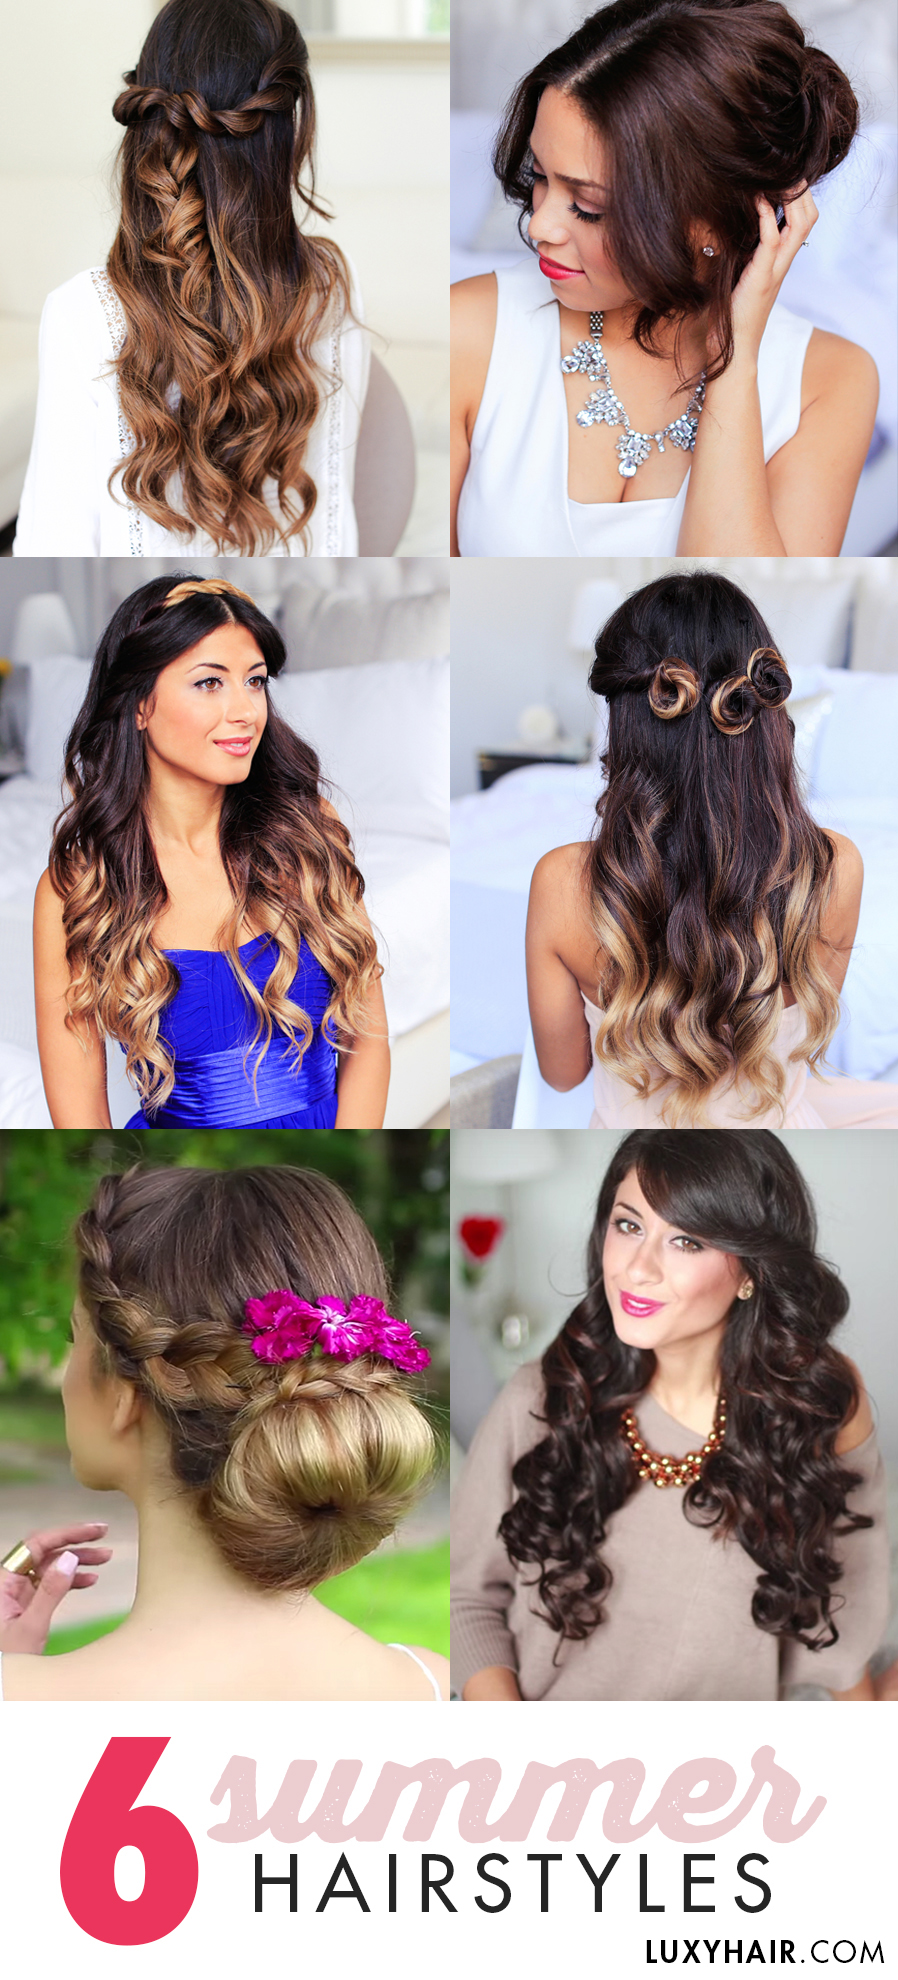 Hairstyles for special occasions 6 summer hairstyles youll love an error occurred baditri Gallery